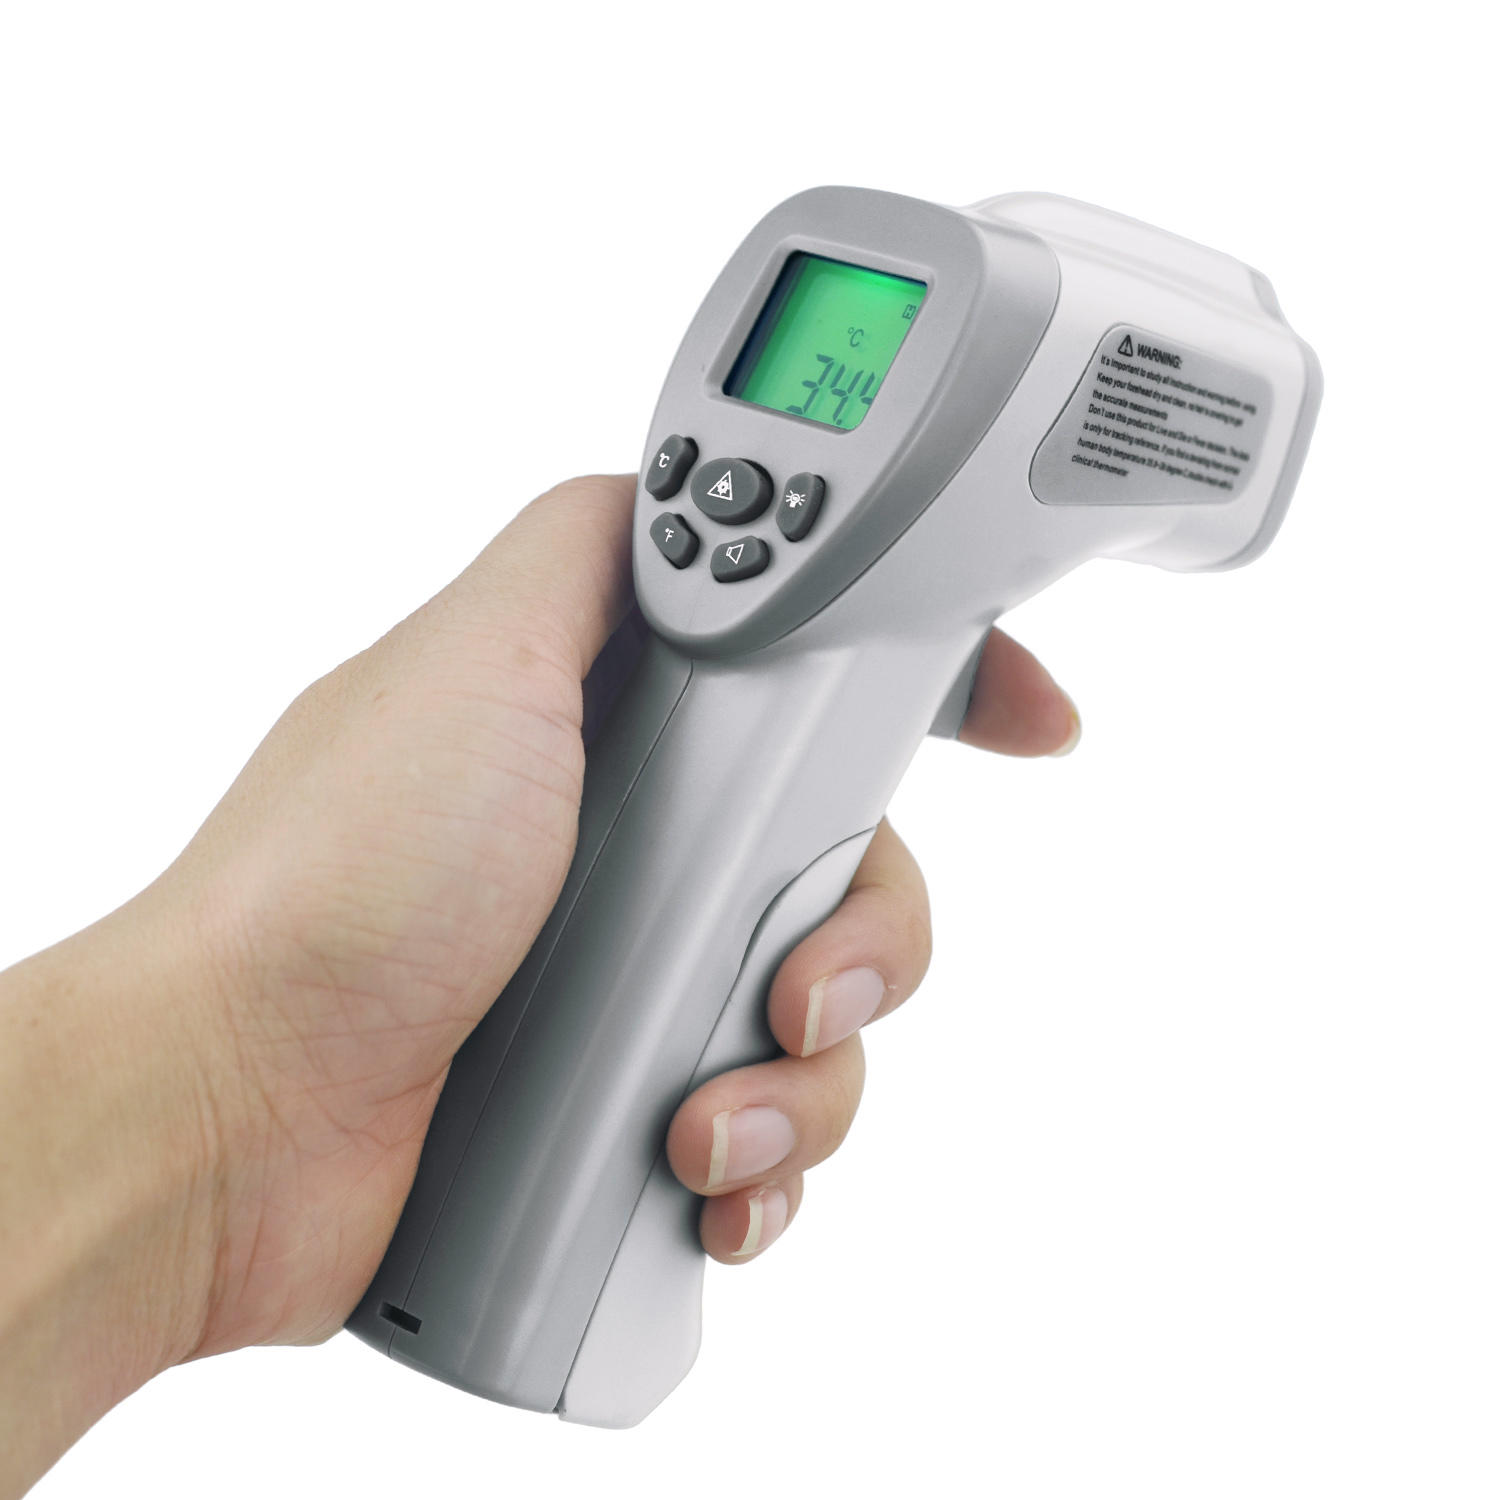 Infrared Thermometer Alarm set infrared thermometer Body IR Thermometer HP-980B